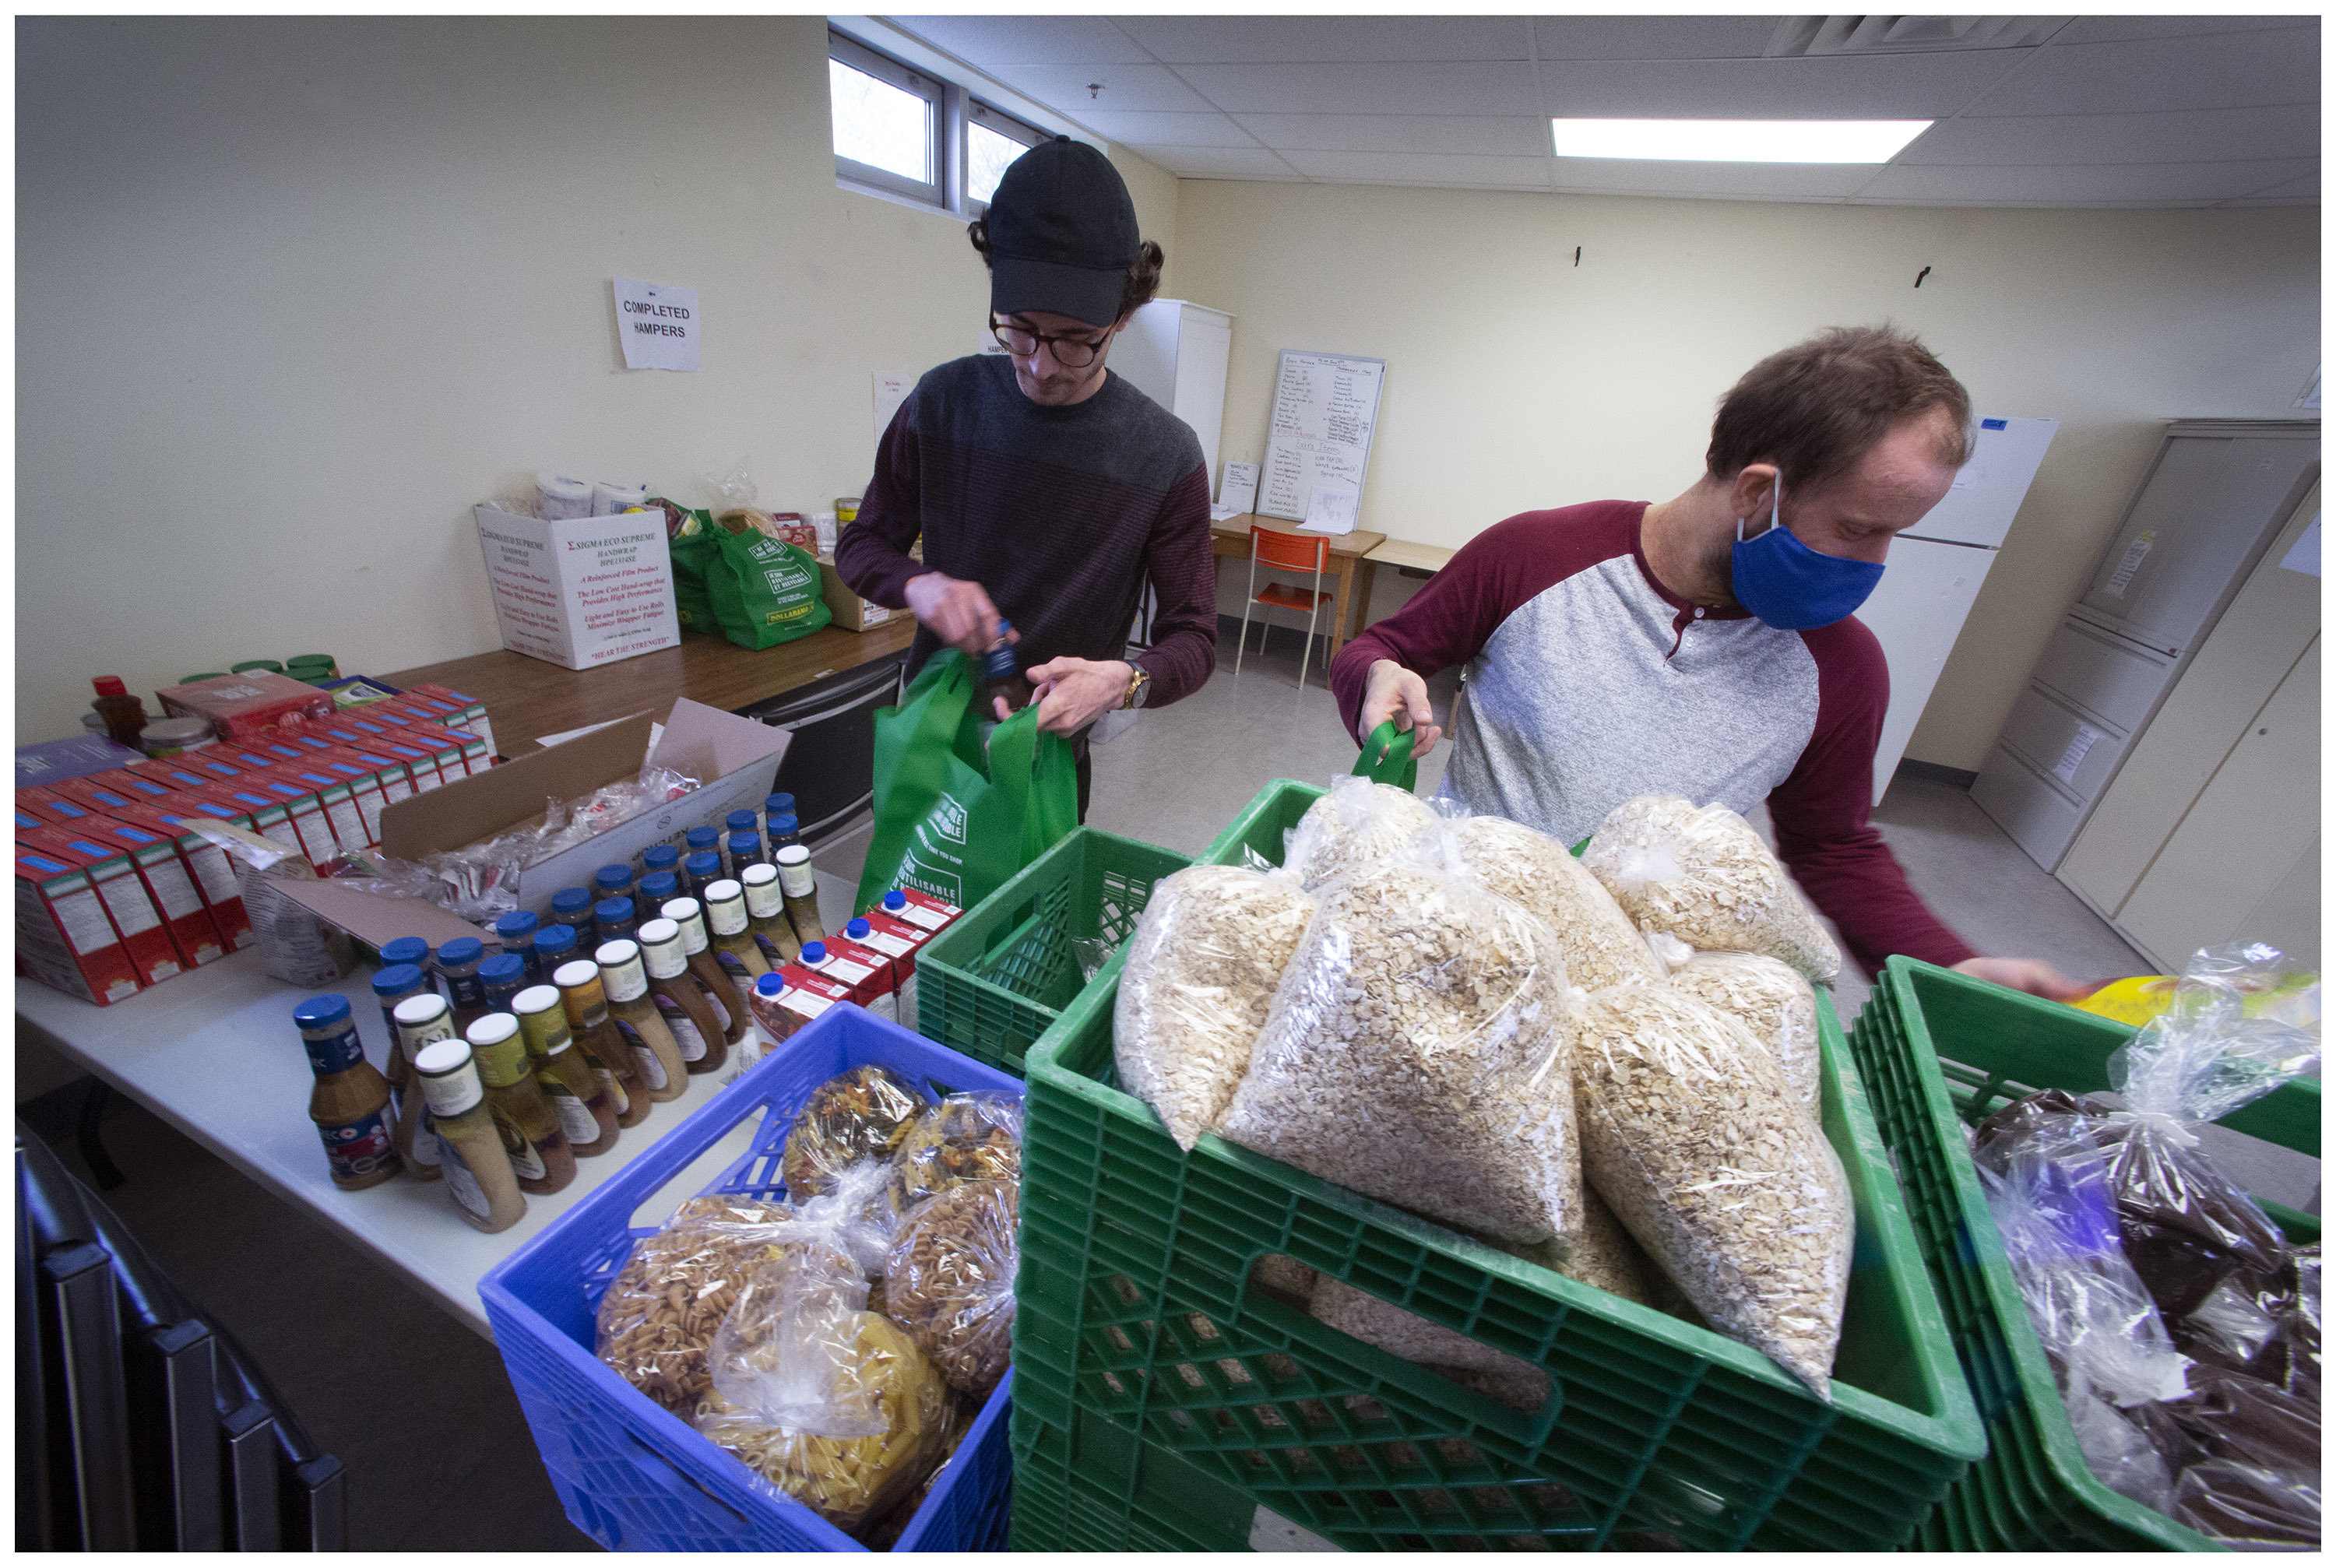 Jared Davis and Nick Baxter prepare food hampers at The Gathering Place. The non-profit organization changed its tactics when the lockdown started. (Photo by Paul Daly)